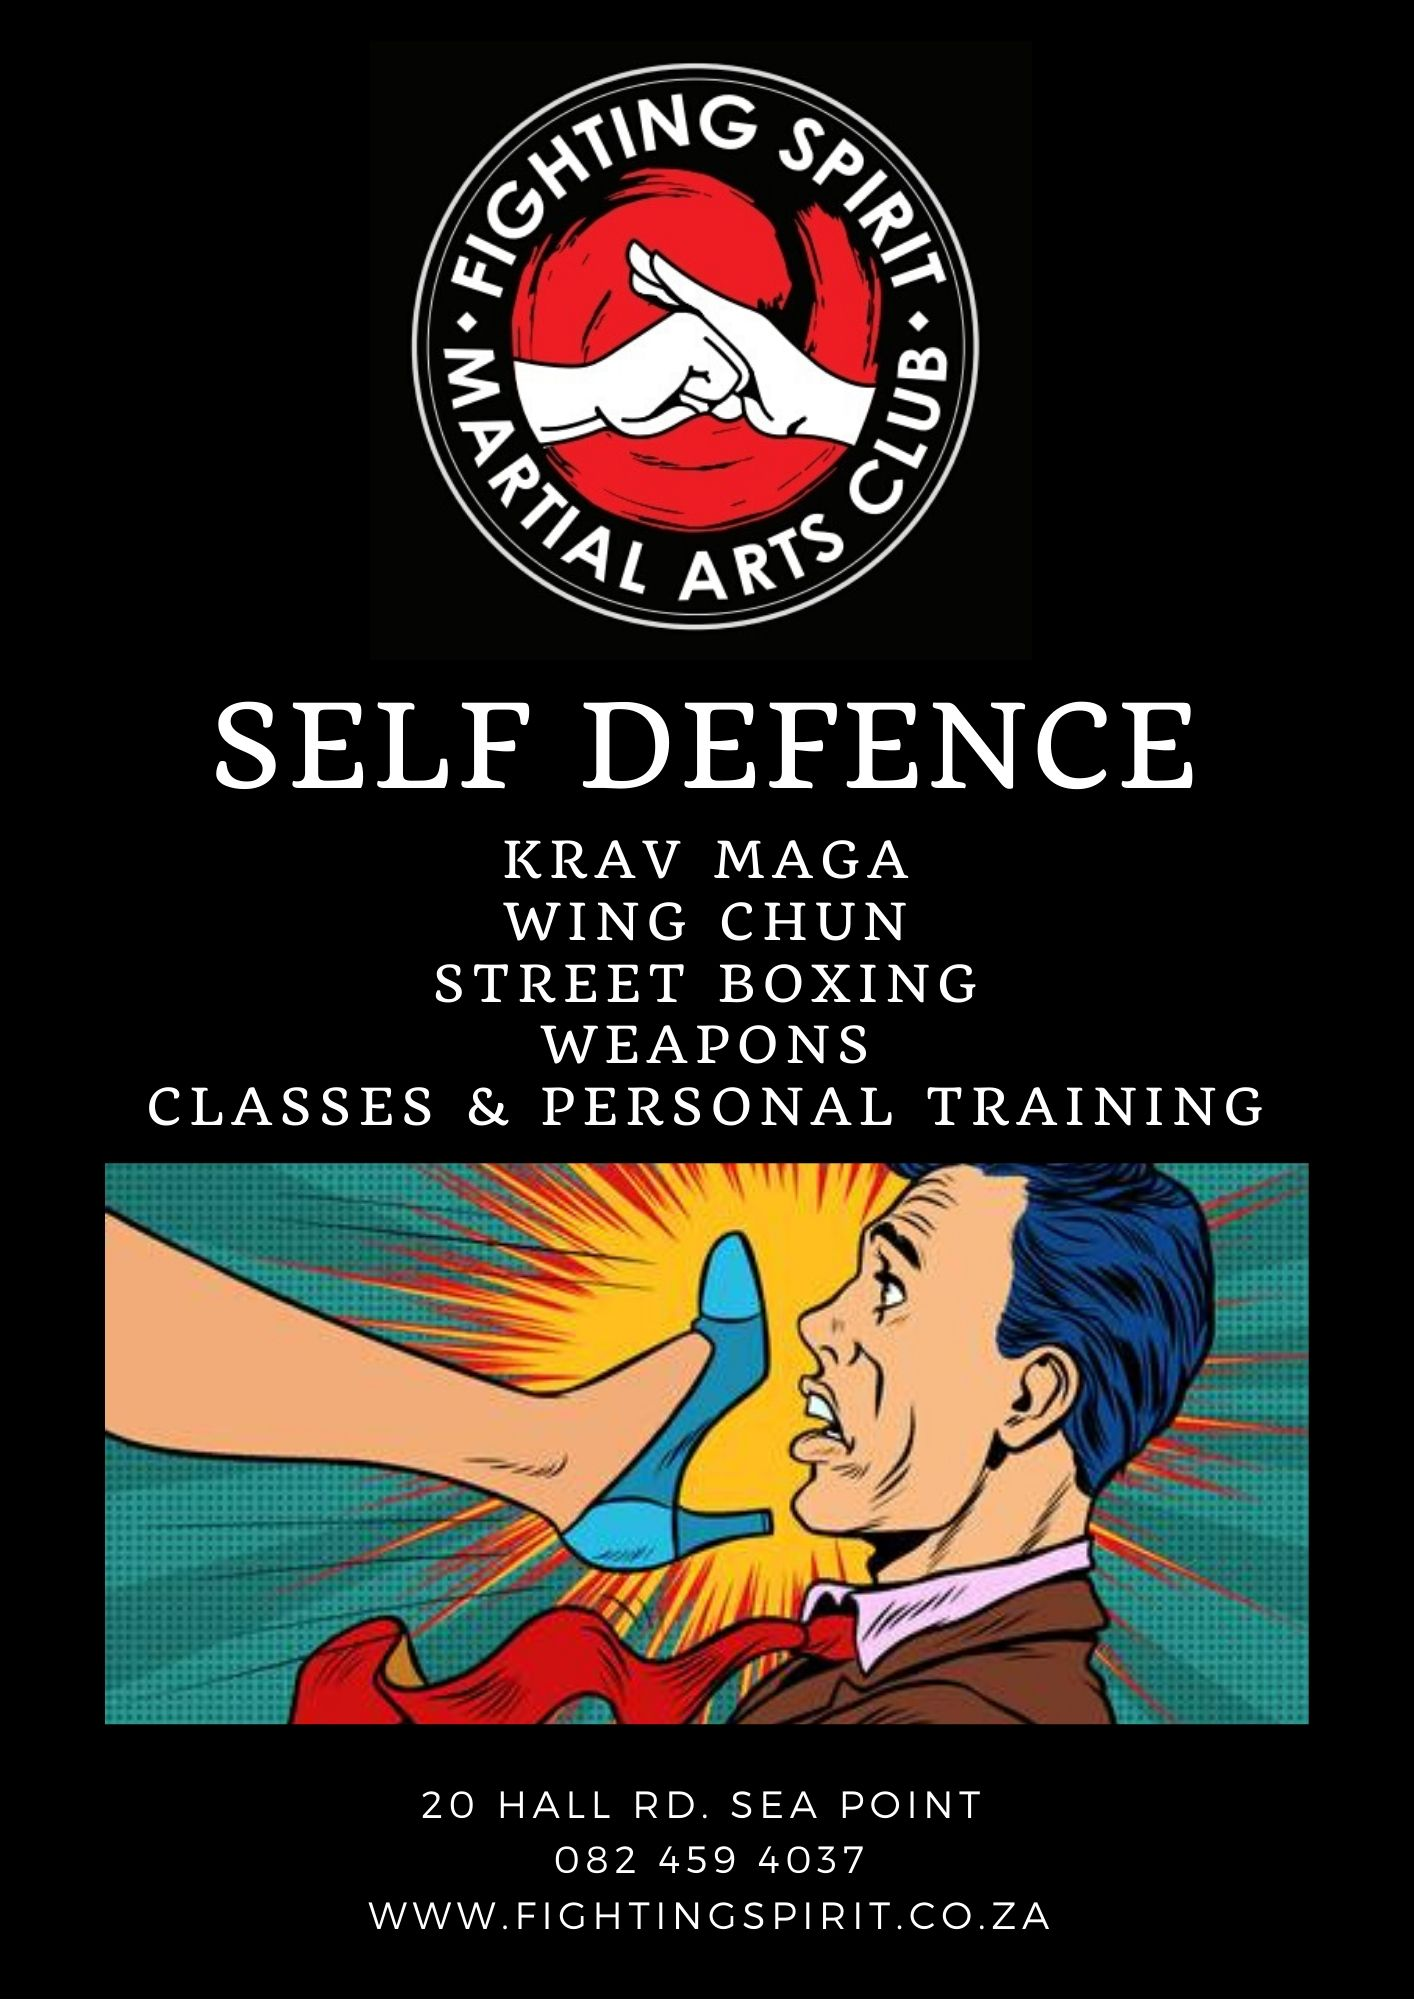 Functional Self Defence Training in Sea Point